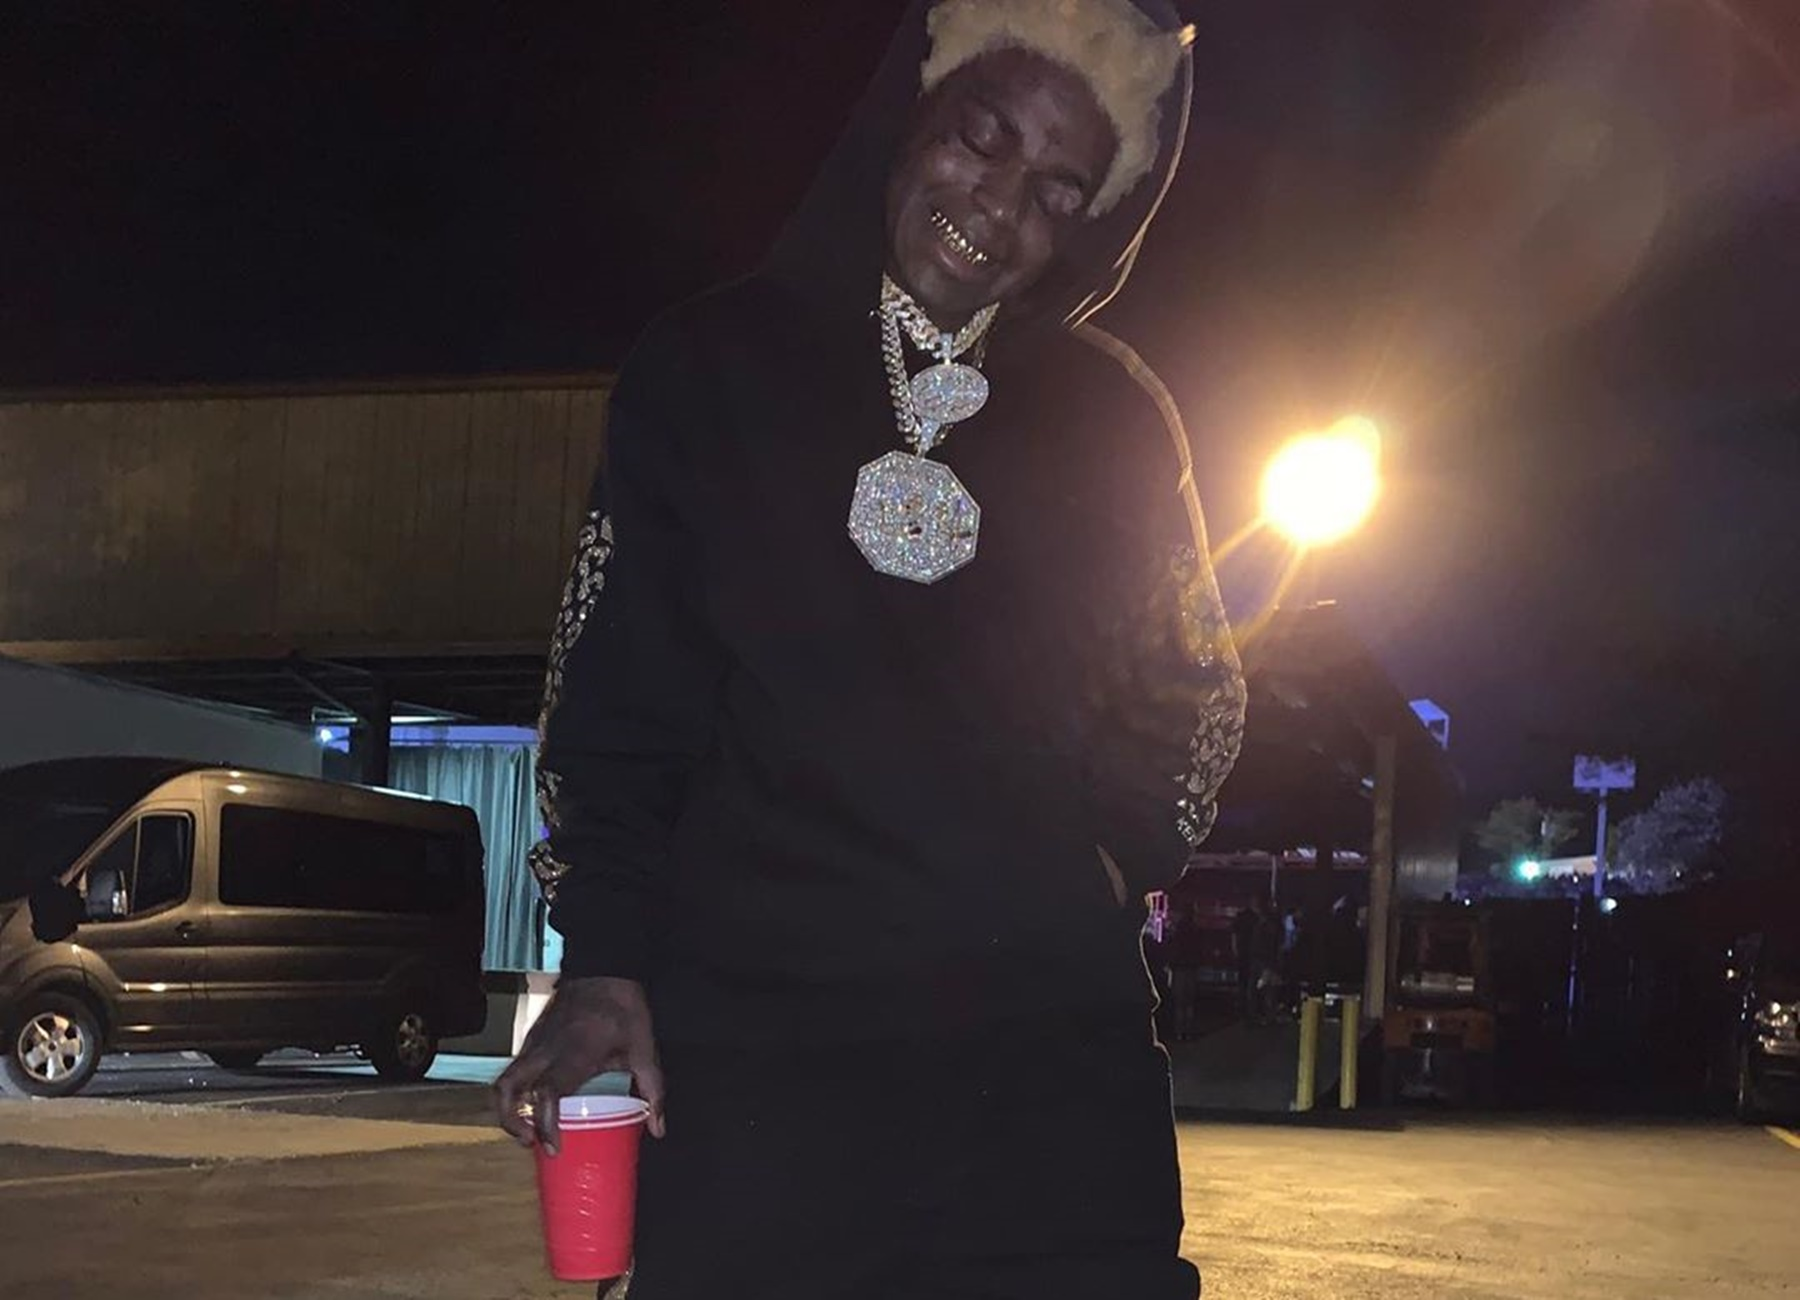 lil-wayne-and-kodak-black-got-stopped-by-authorities-t-i-s-nemesis-is-the-one-facing-some-serious-consequences